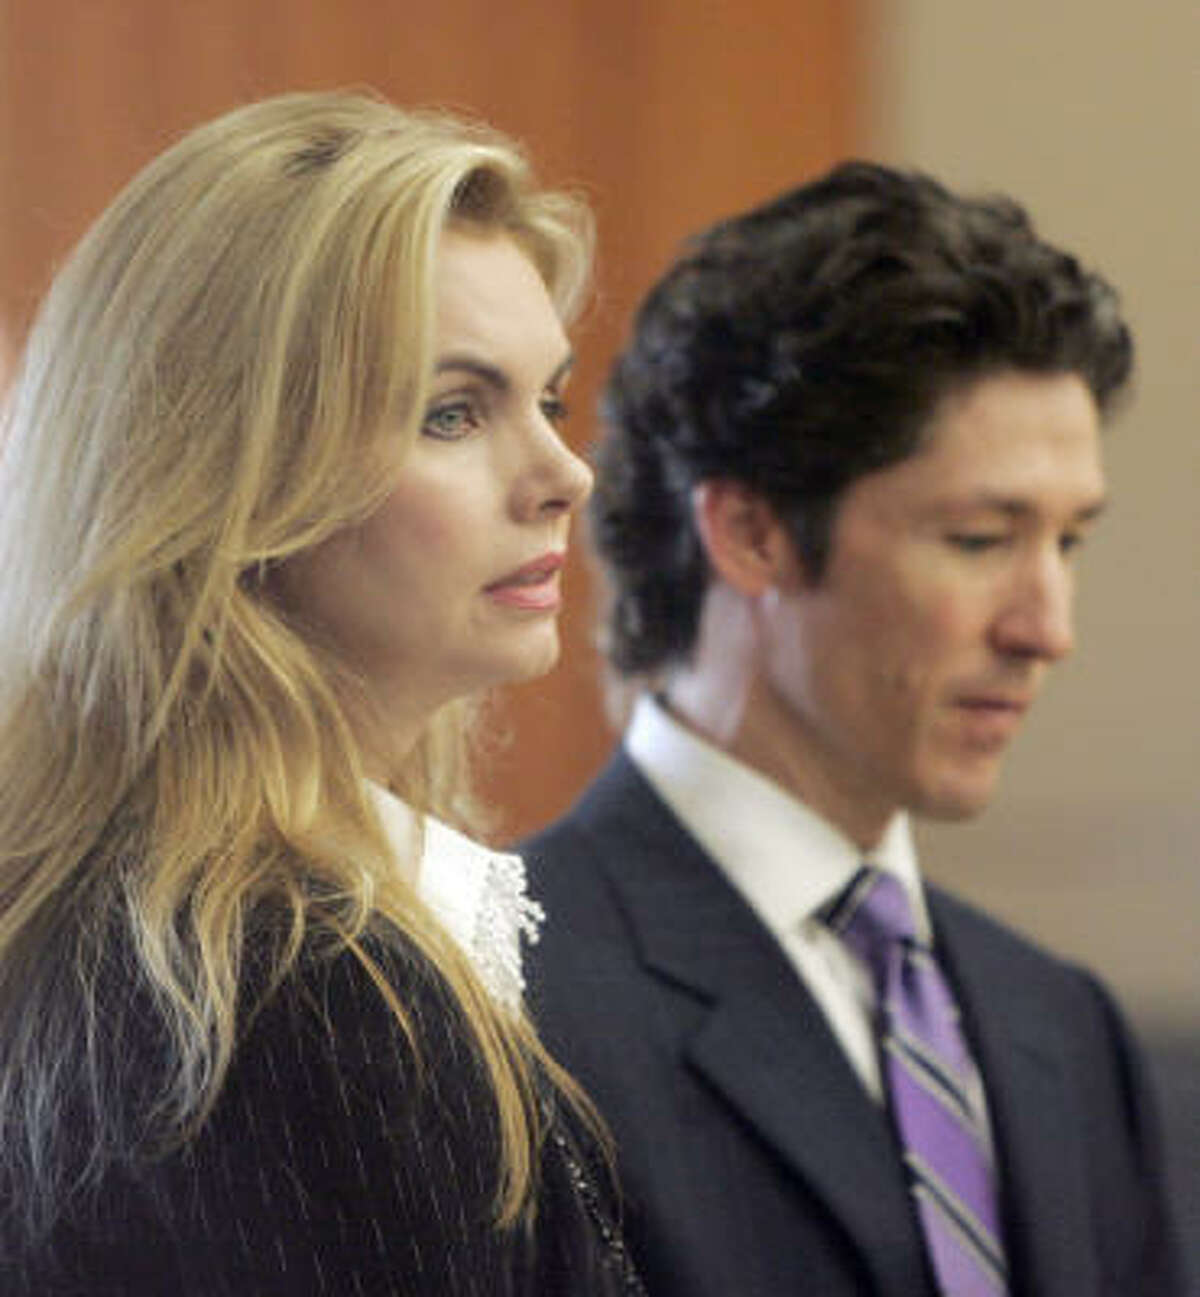 Victoria Osteen and her husband, evangelist Joel Osteen, wait in court during a break in testimony in her civil trial Thursday, Aug. 7, 2008 in Houston. Victoria, the co-pastor of Lakewood Church, is being sued by Continental flight attendant Sharon Brown, who says Osteen assaulted her on a plane.